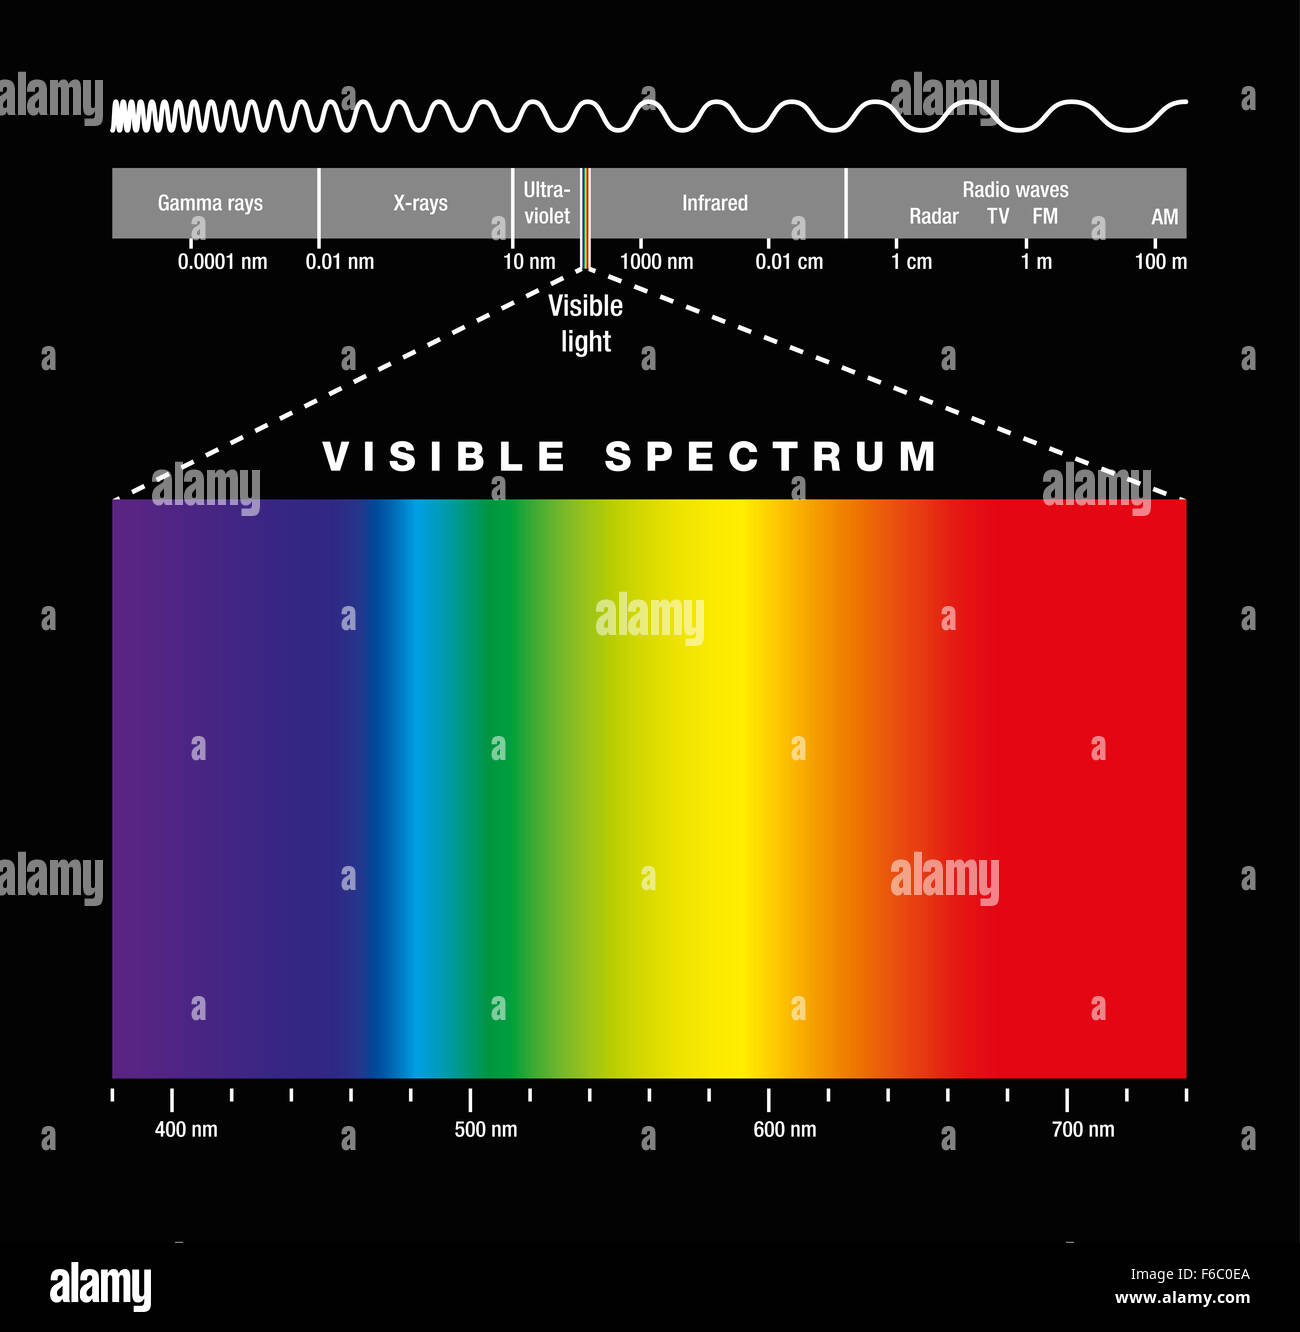 color spectrum Define color spectrum color spectrum synonyms, color spectrum pronunciation, color spectrum translation, english dictionary definition of color spectrum noun 1 color spectrum - the distribution of colors produced when light is dispersed by a prism visible spectrum spectrum - an ordered array of the.